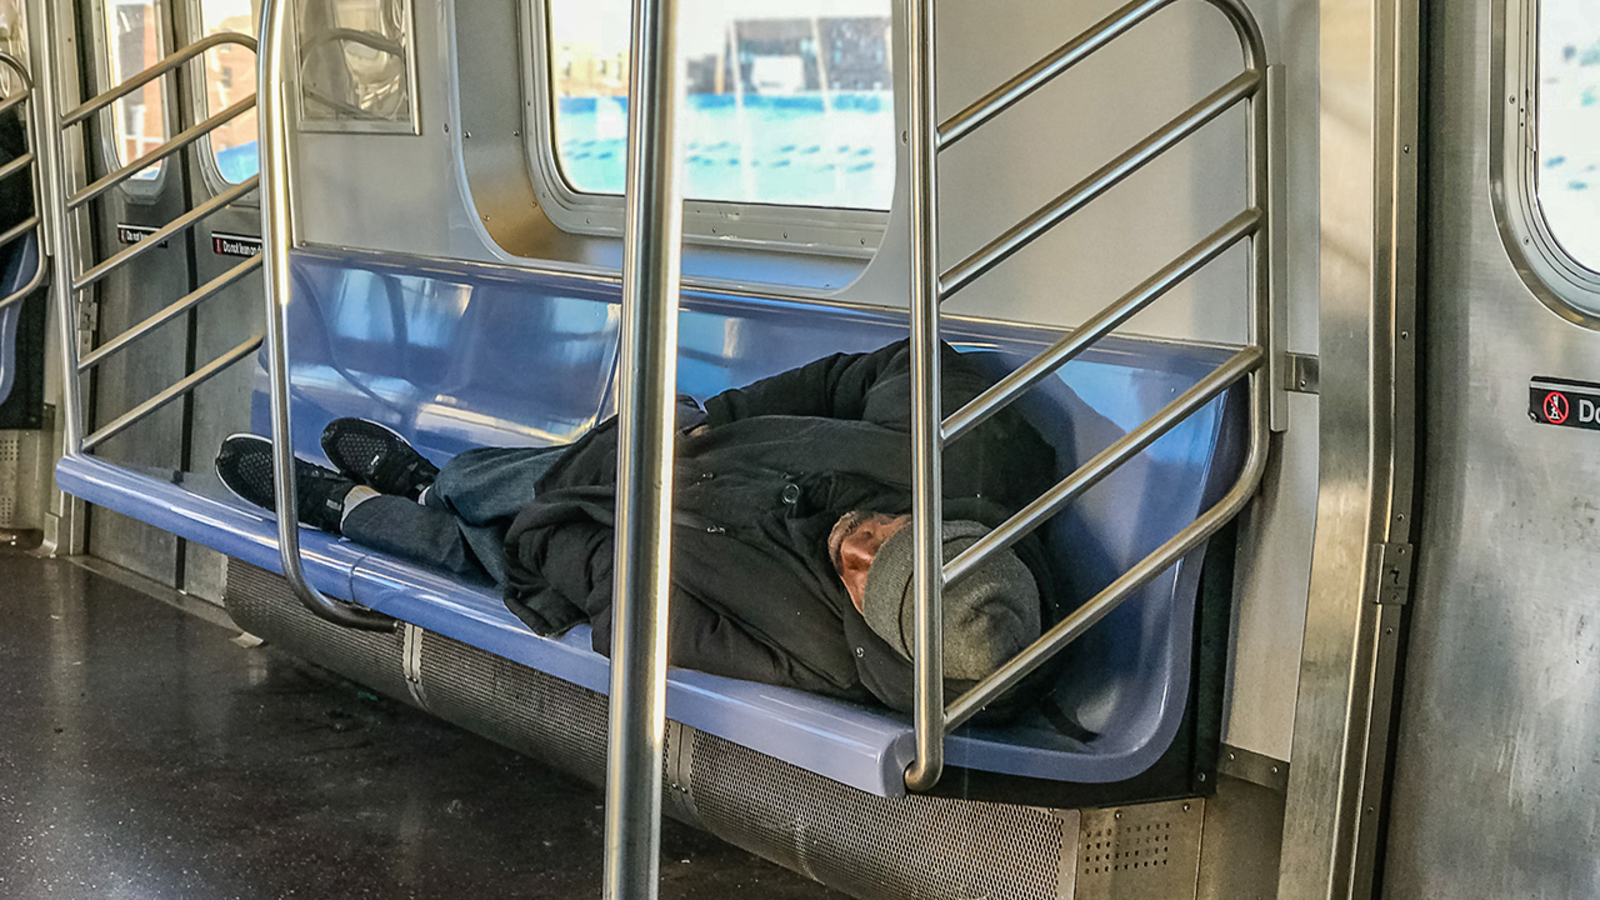 Amid protest, New York City holds hearing on homeless in subway system